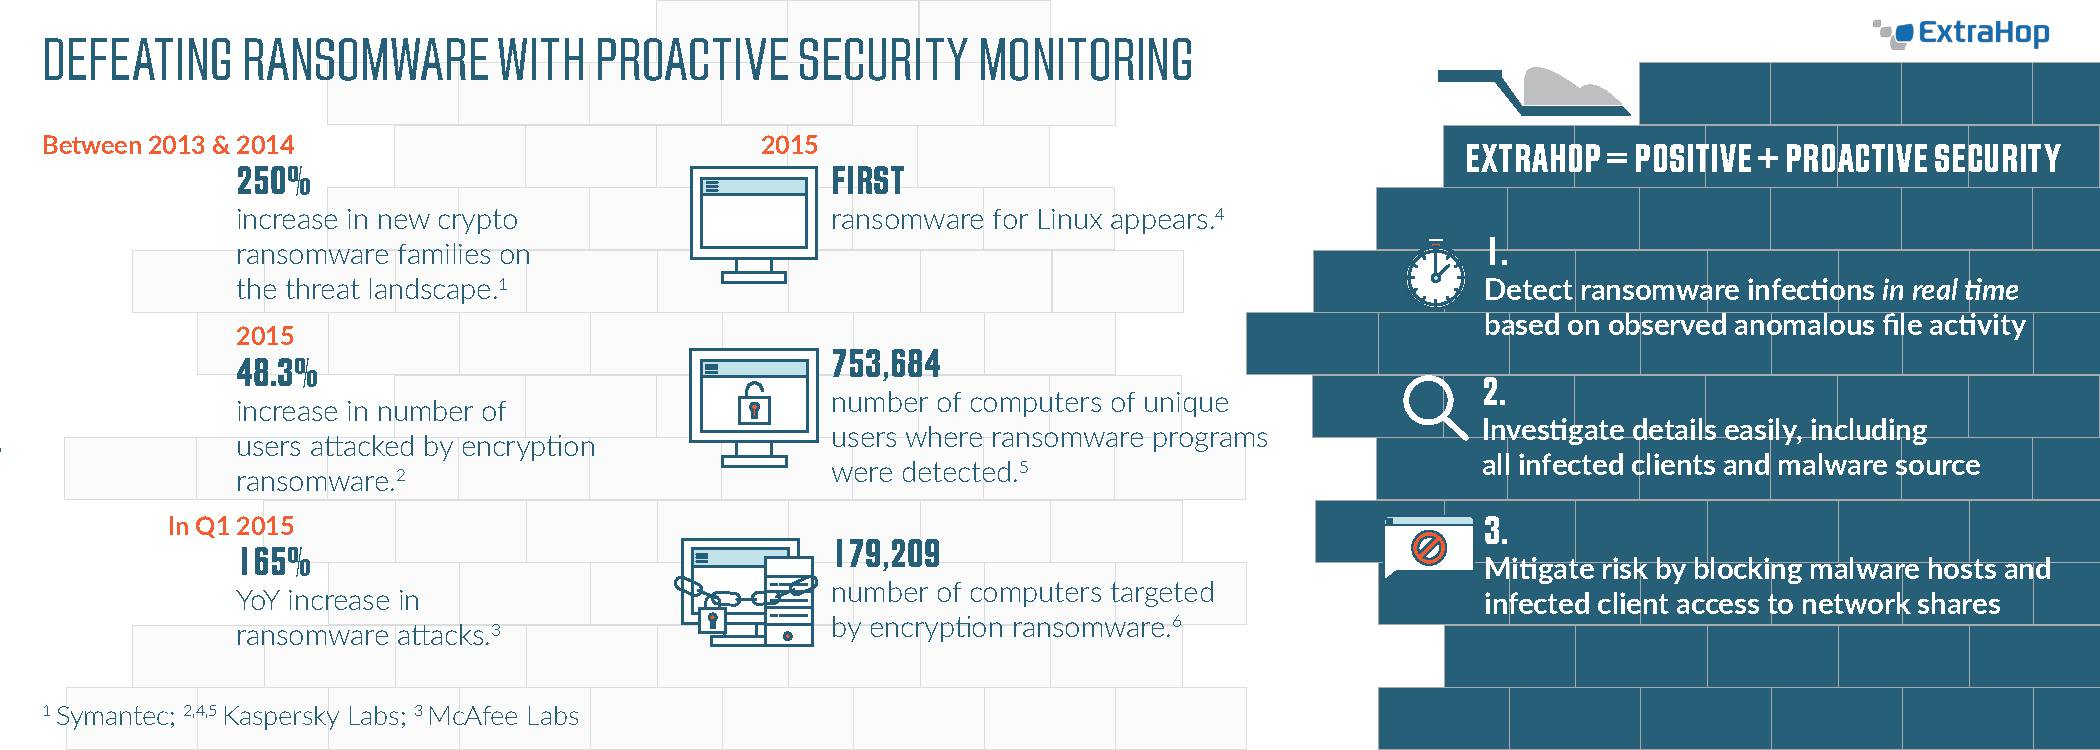 Network security monitoring - Ransomware Infographic